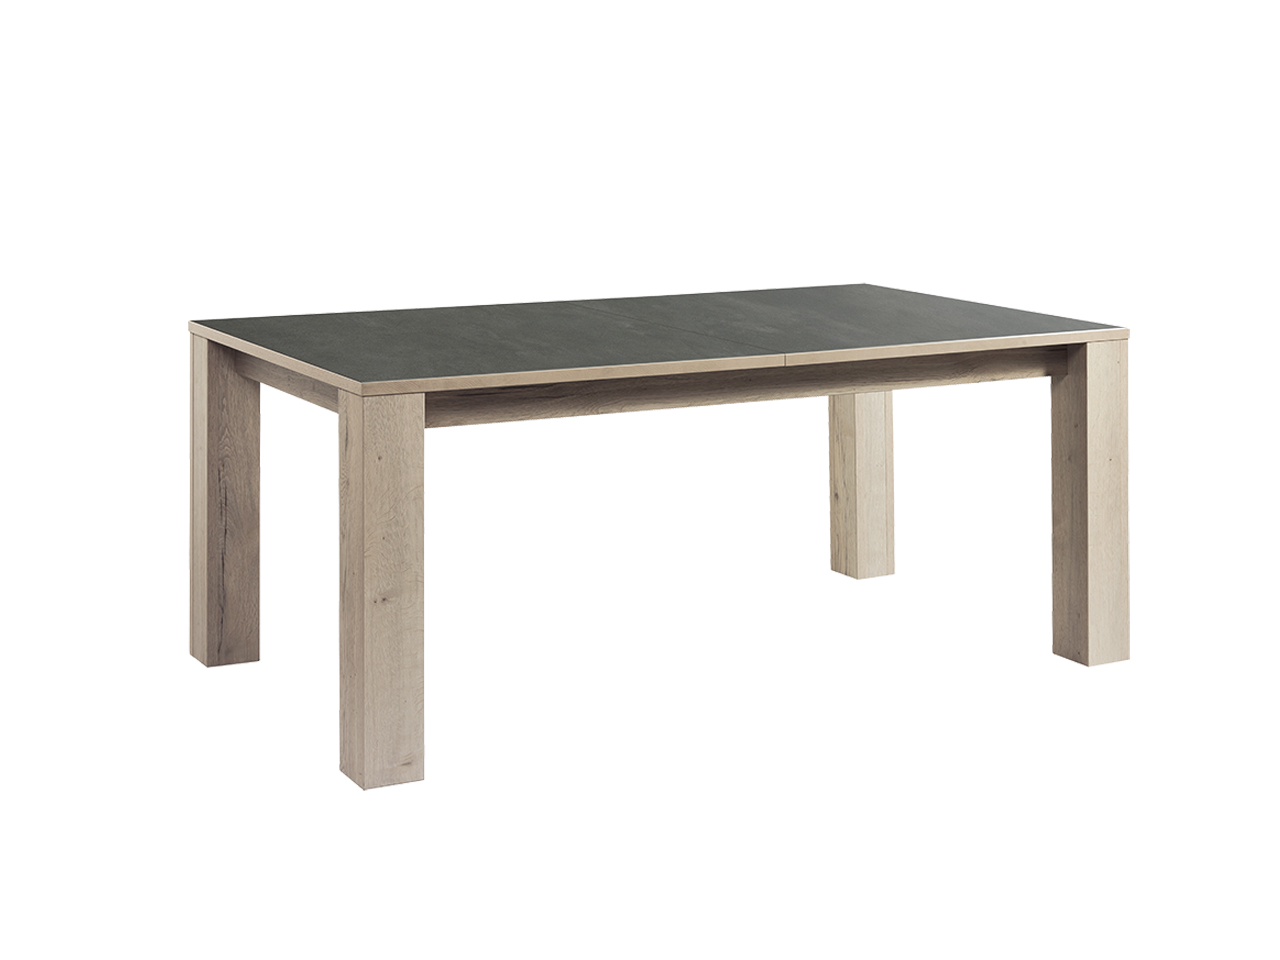 table himalaya 180 pieds bois ch ne blanc finition c ramique gris meubles minet. Black Bedroom Furniture Sets. Home Design Ideas